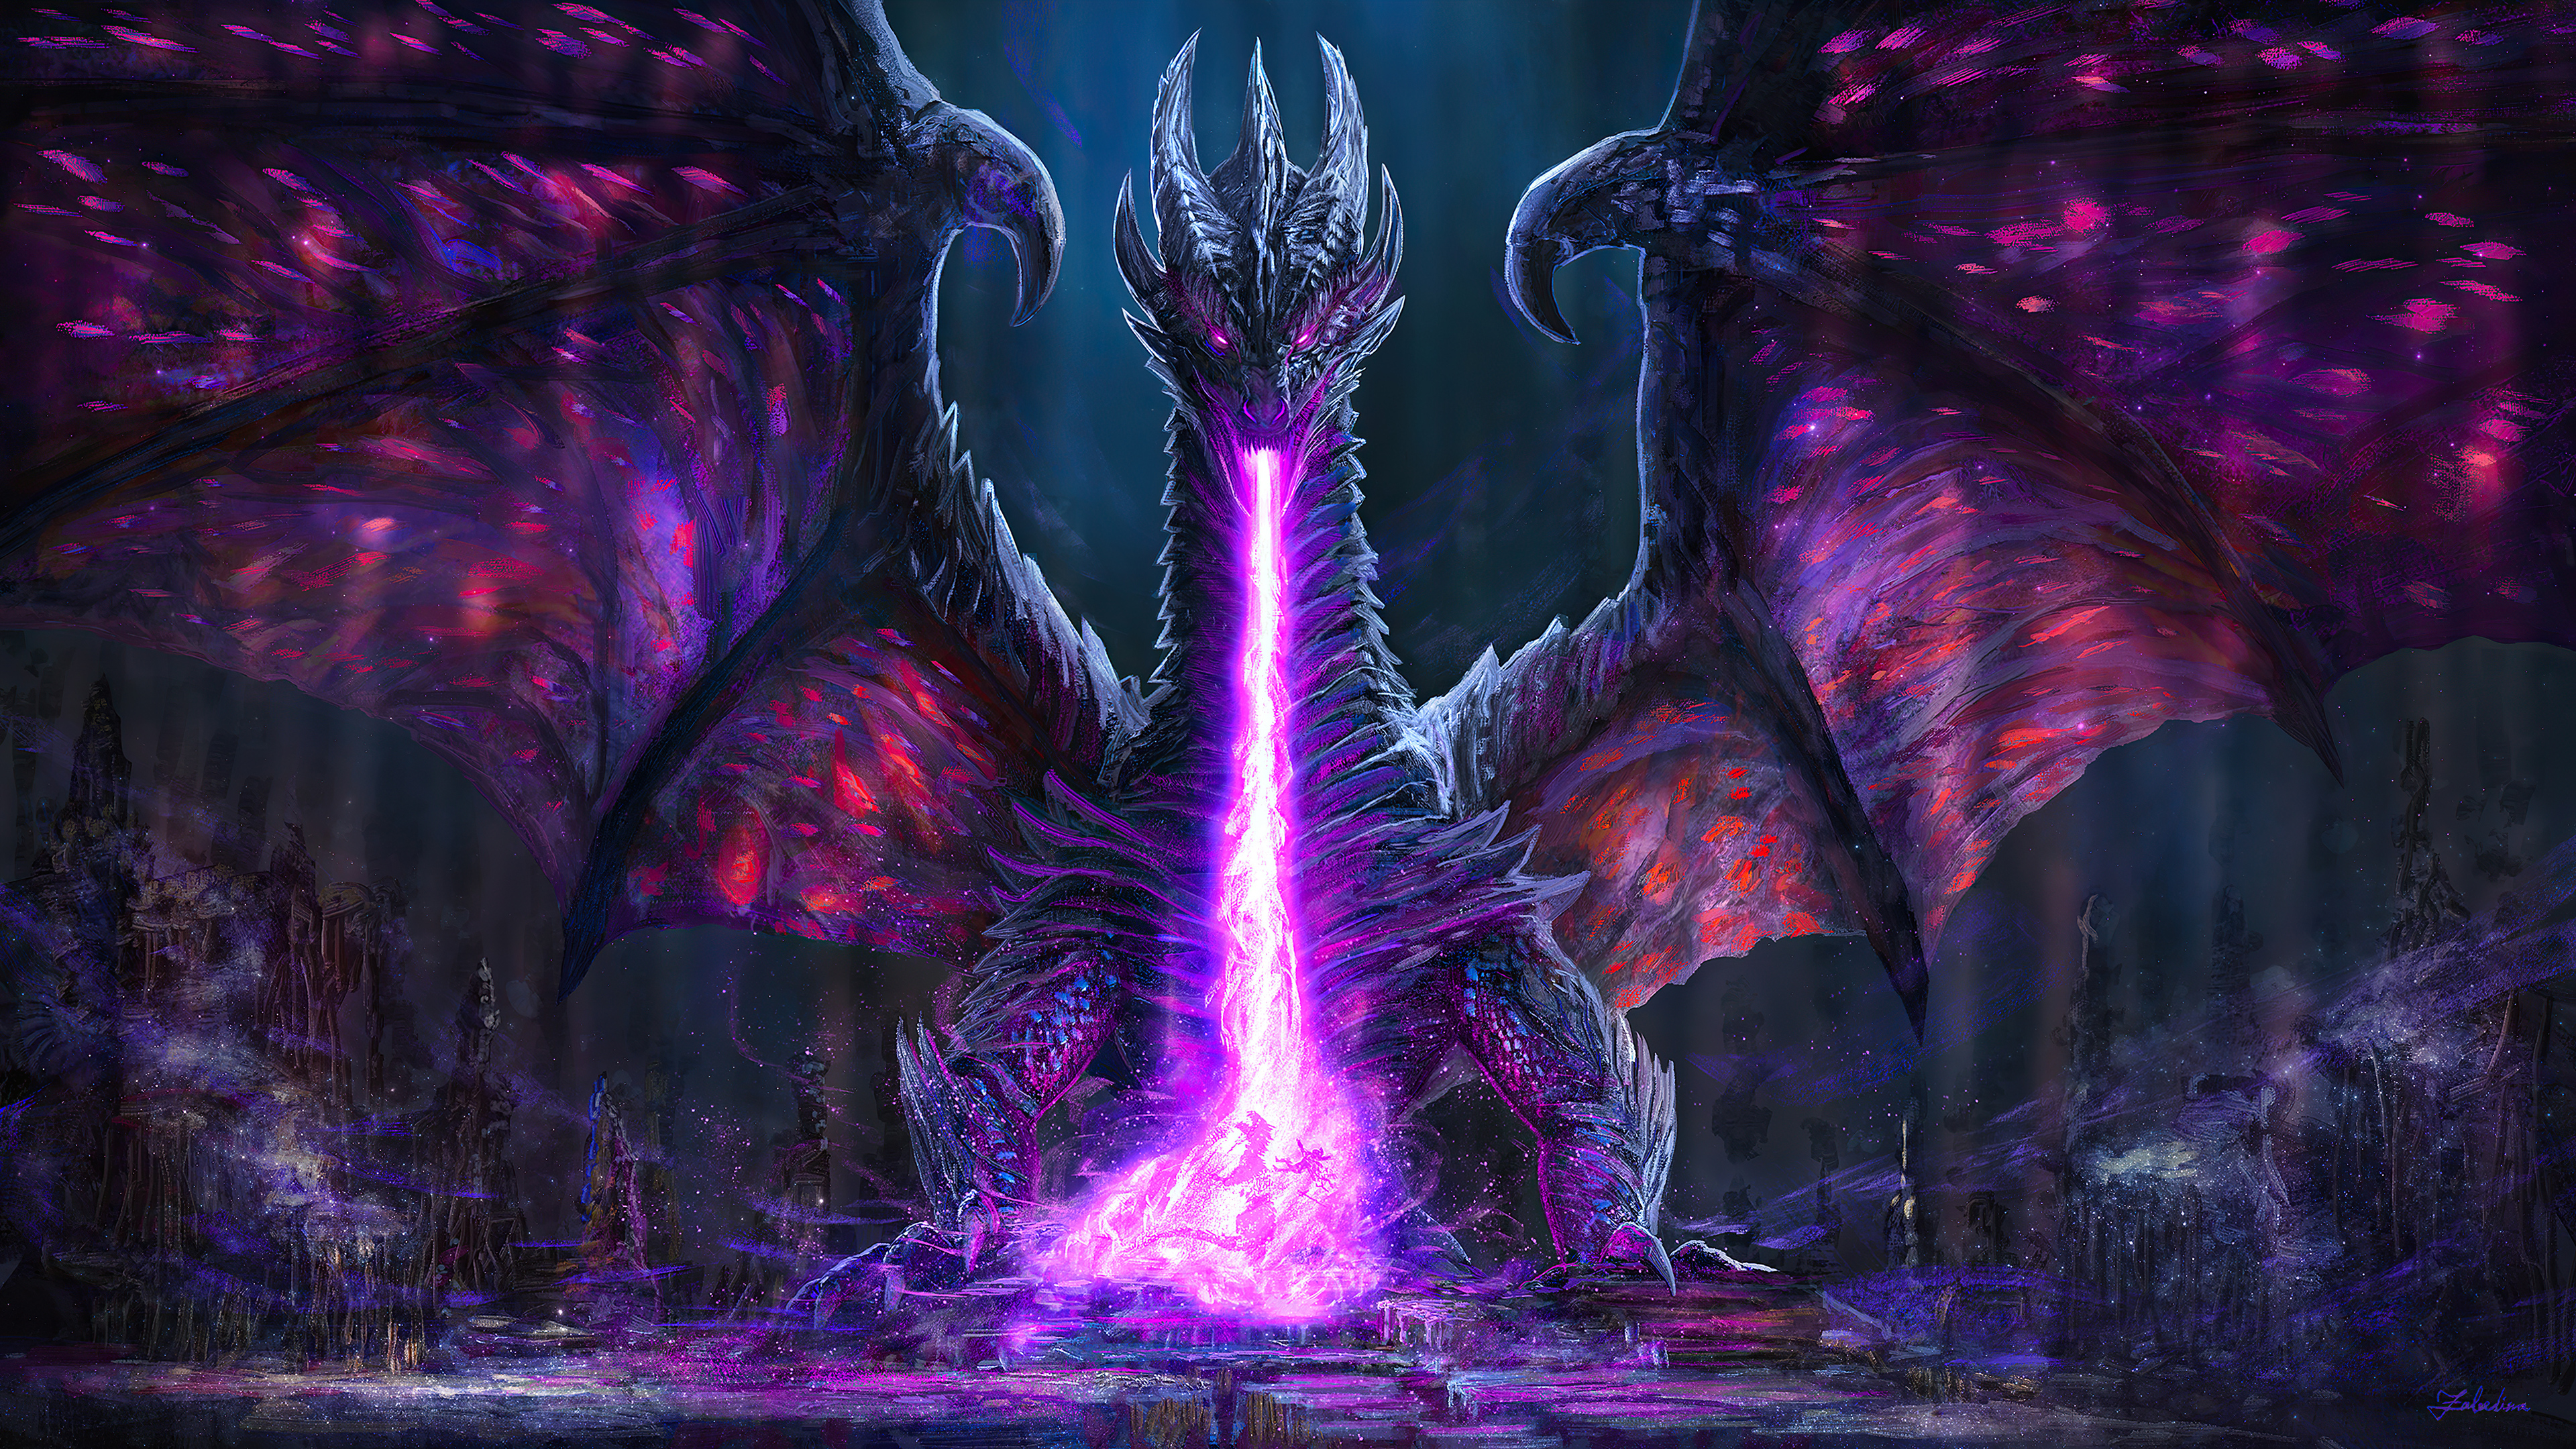 Black Dragon Breath Battle 4k Hd Artist 4k Wallpapers Images Backgrounds Photos And Pictures